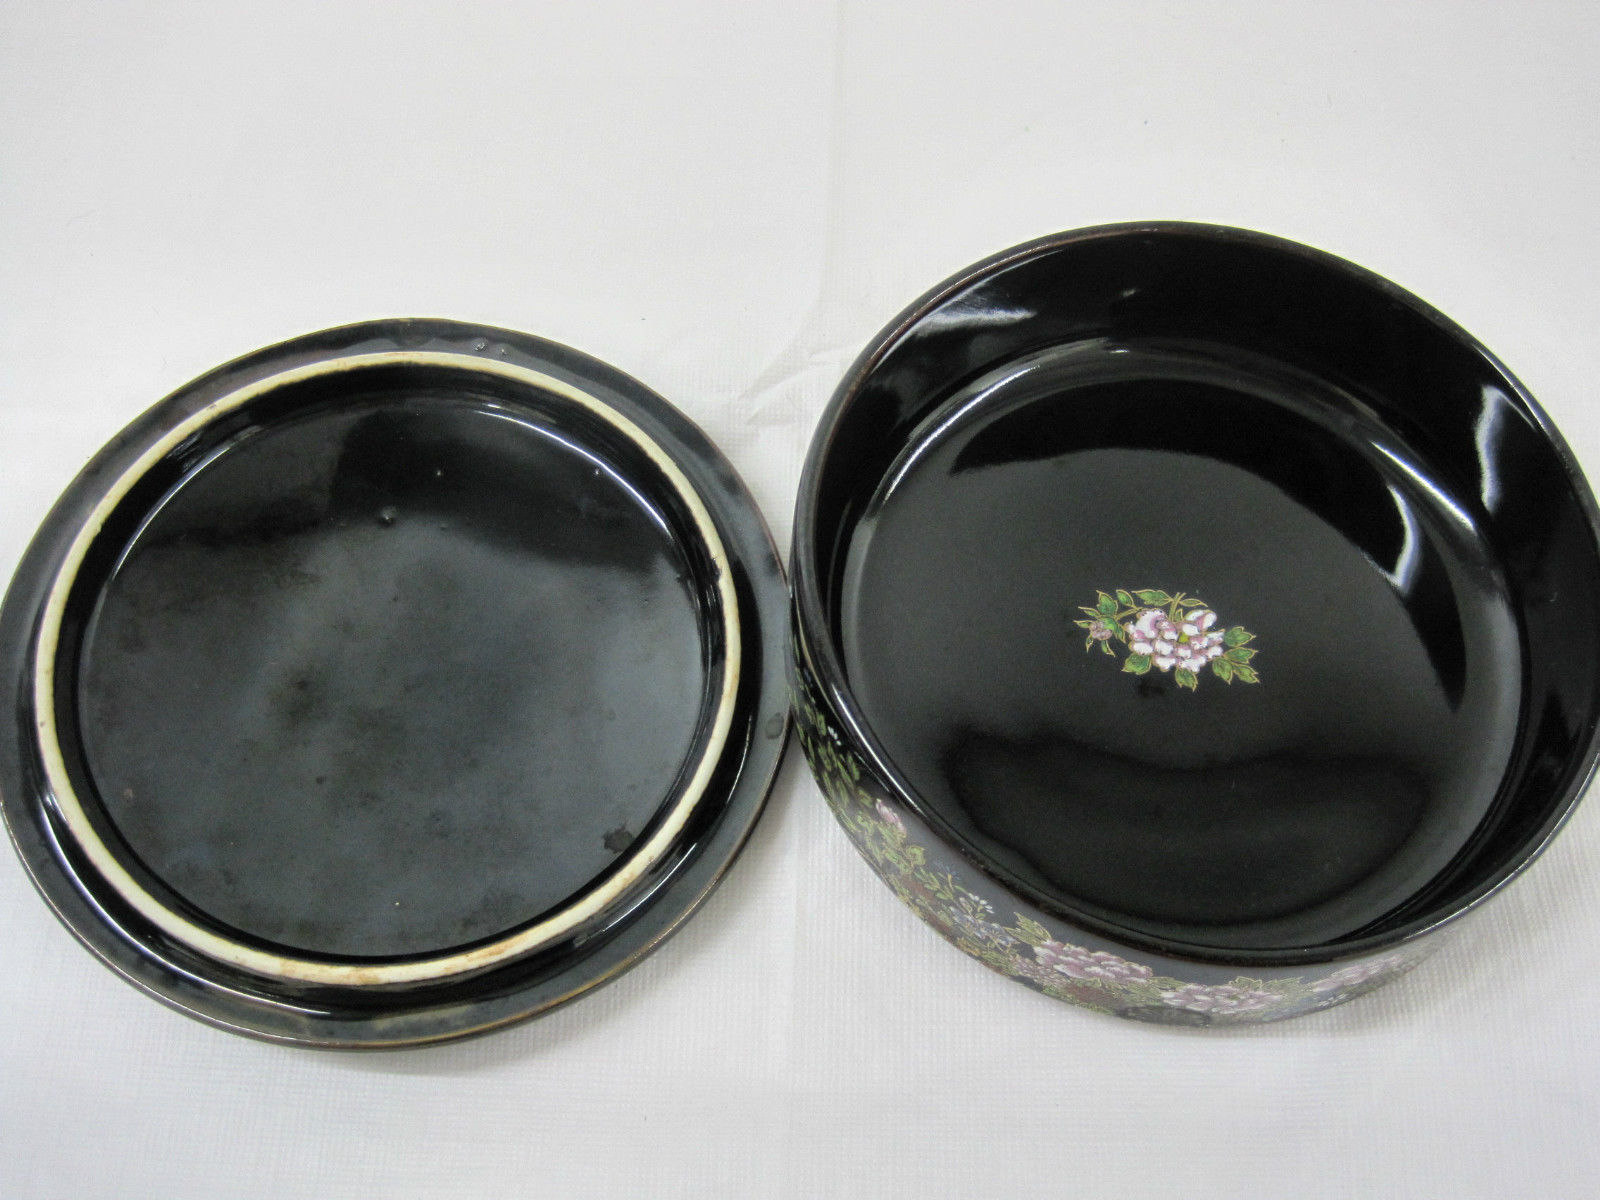 Antique Japanese Imperial Kutani Round Covered Trinket Box Dish Container image 4